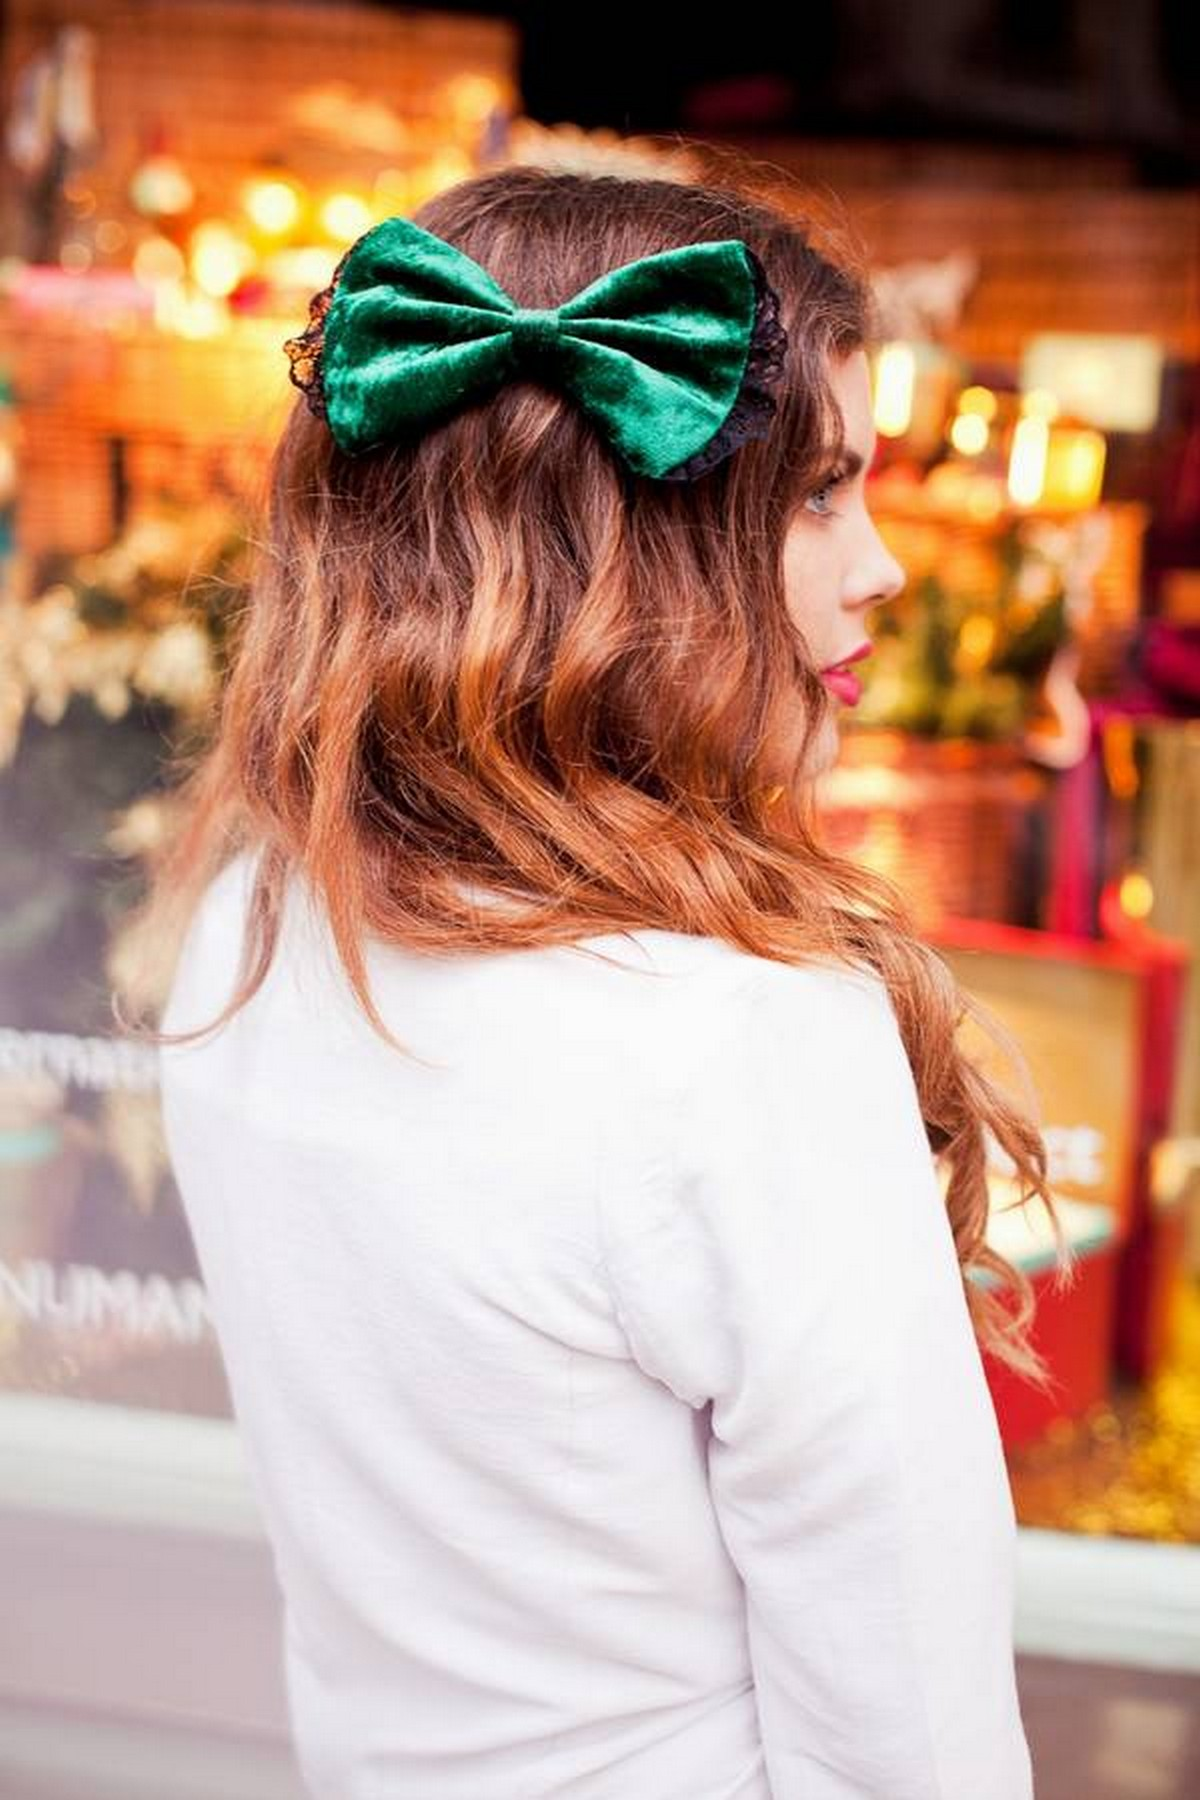 If you're willing to spice up your hairdo with some unique accessories, start with these hair bows that will change the way you style your hair forever!